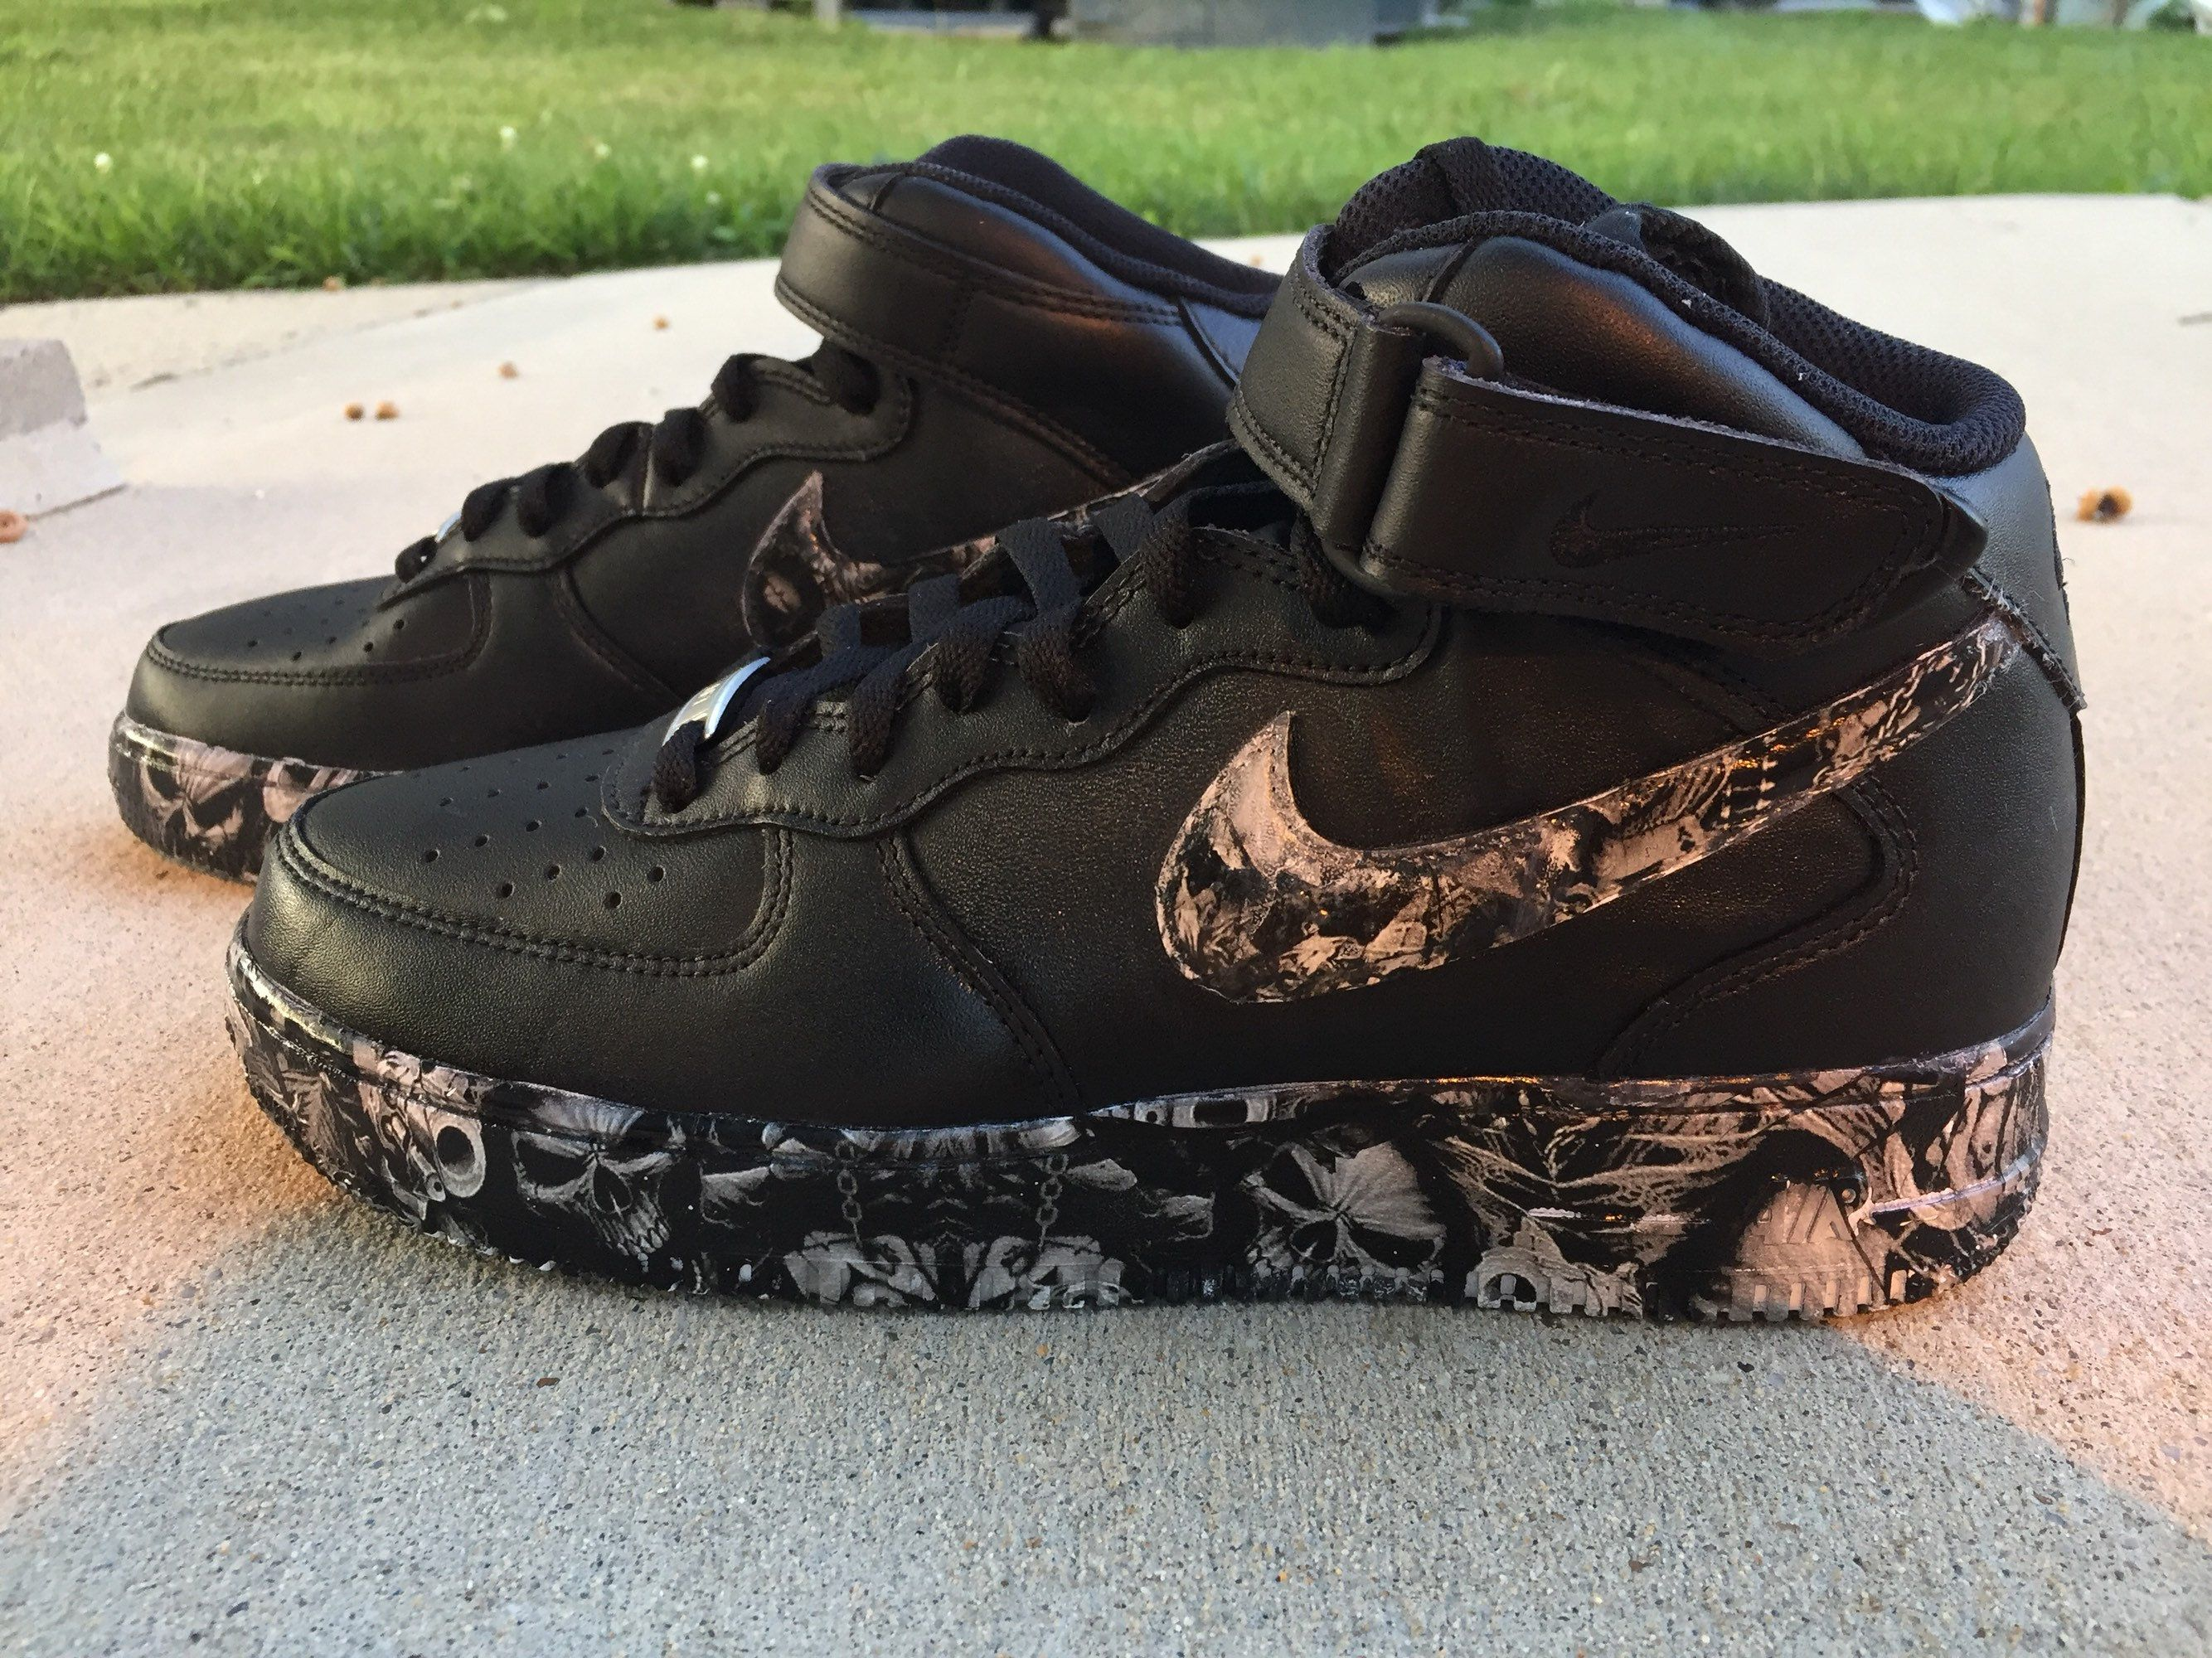 Skull Black Cust Air Force 1 US M 10 (Hydro dipped) 2 in